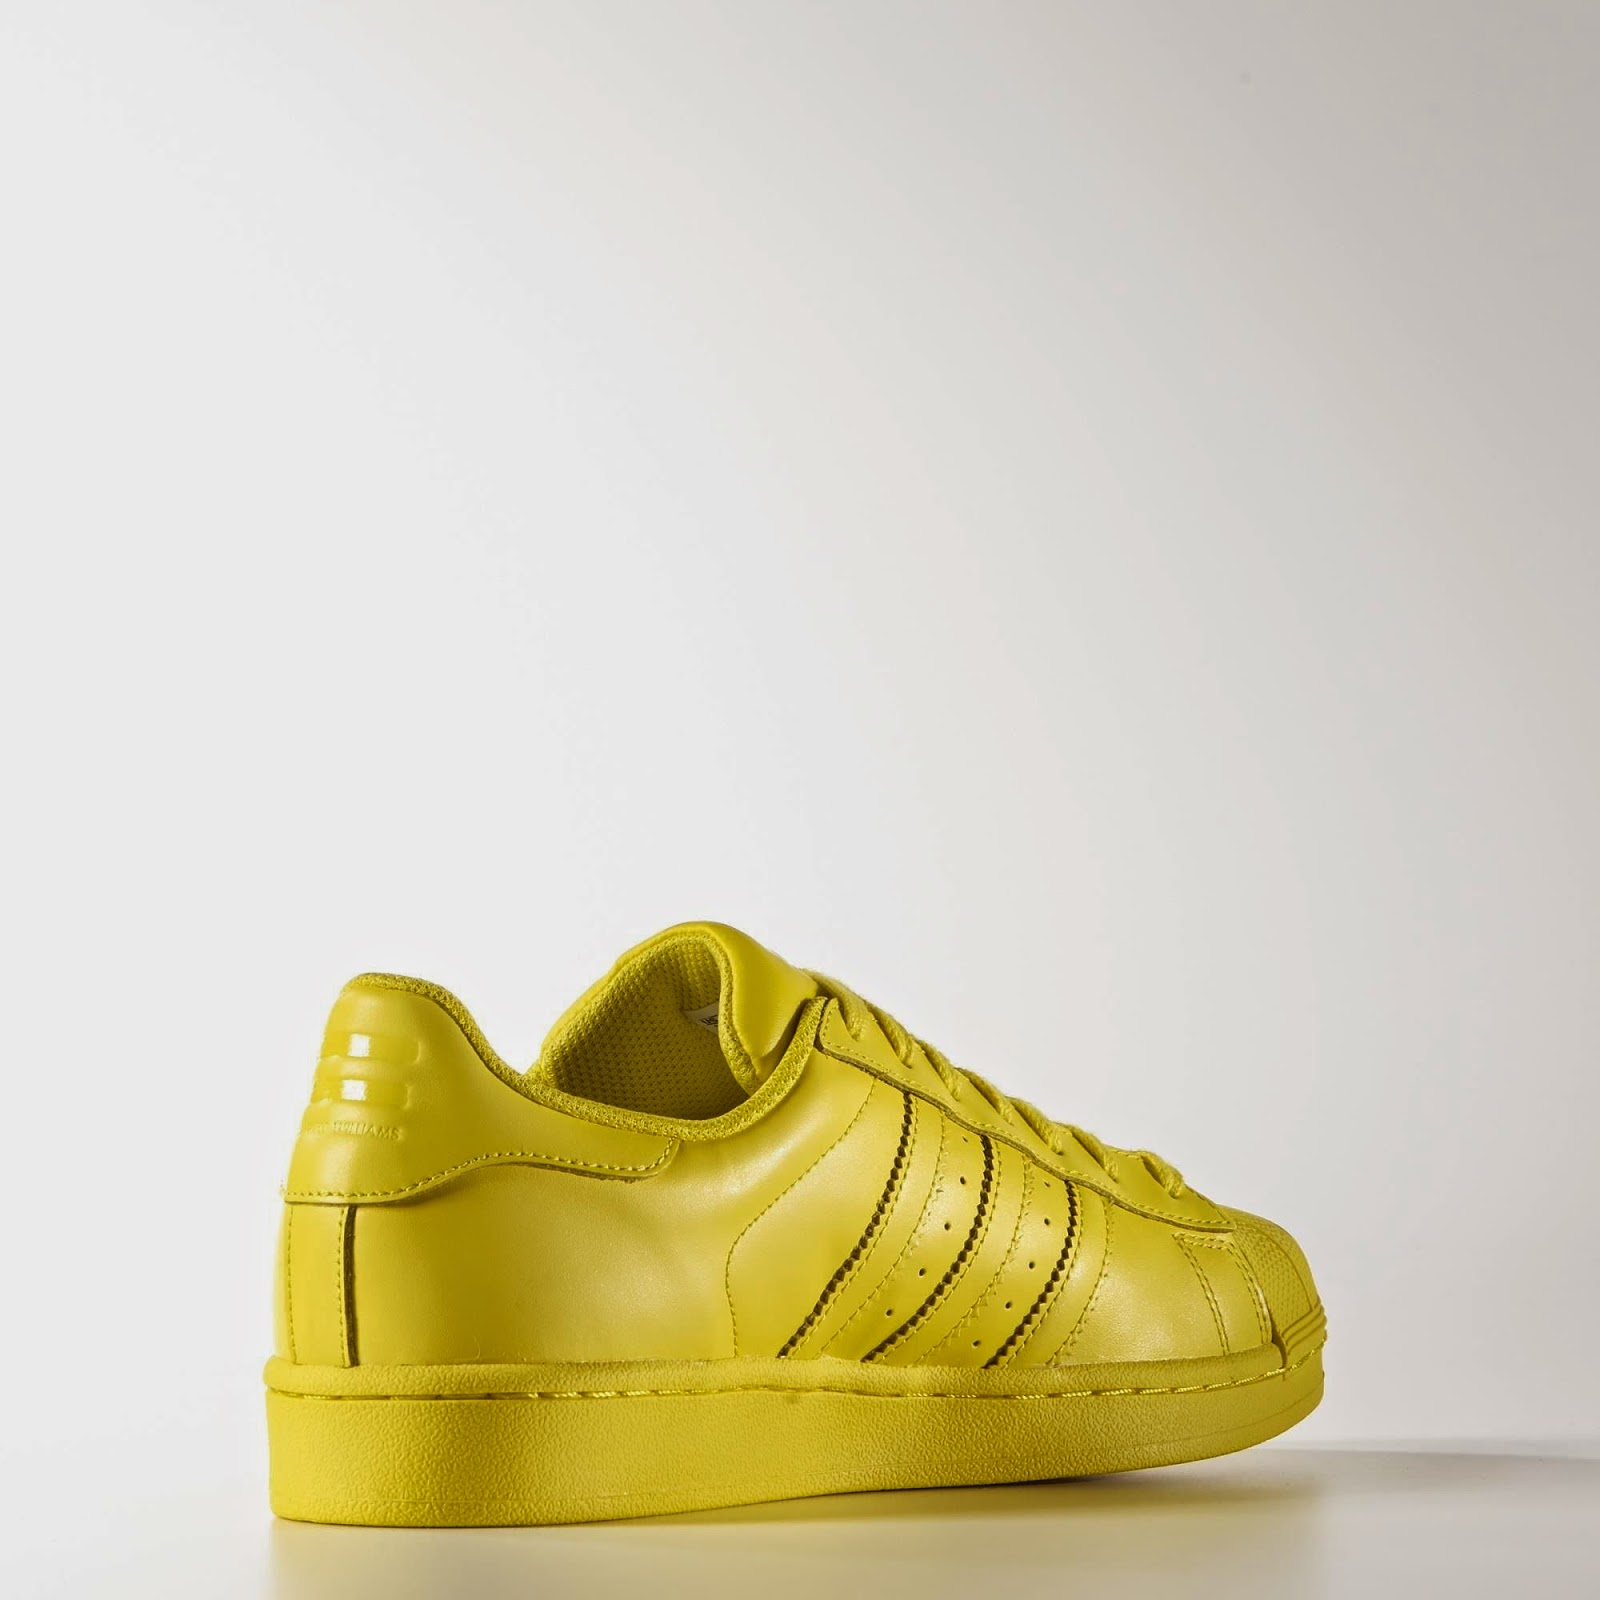 4175d14cfda42 This adidas Originals Superstar is designed in collaboration with Pharrell  Williams and reflects Pharrell s mission to promote individuality